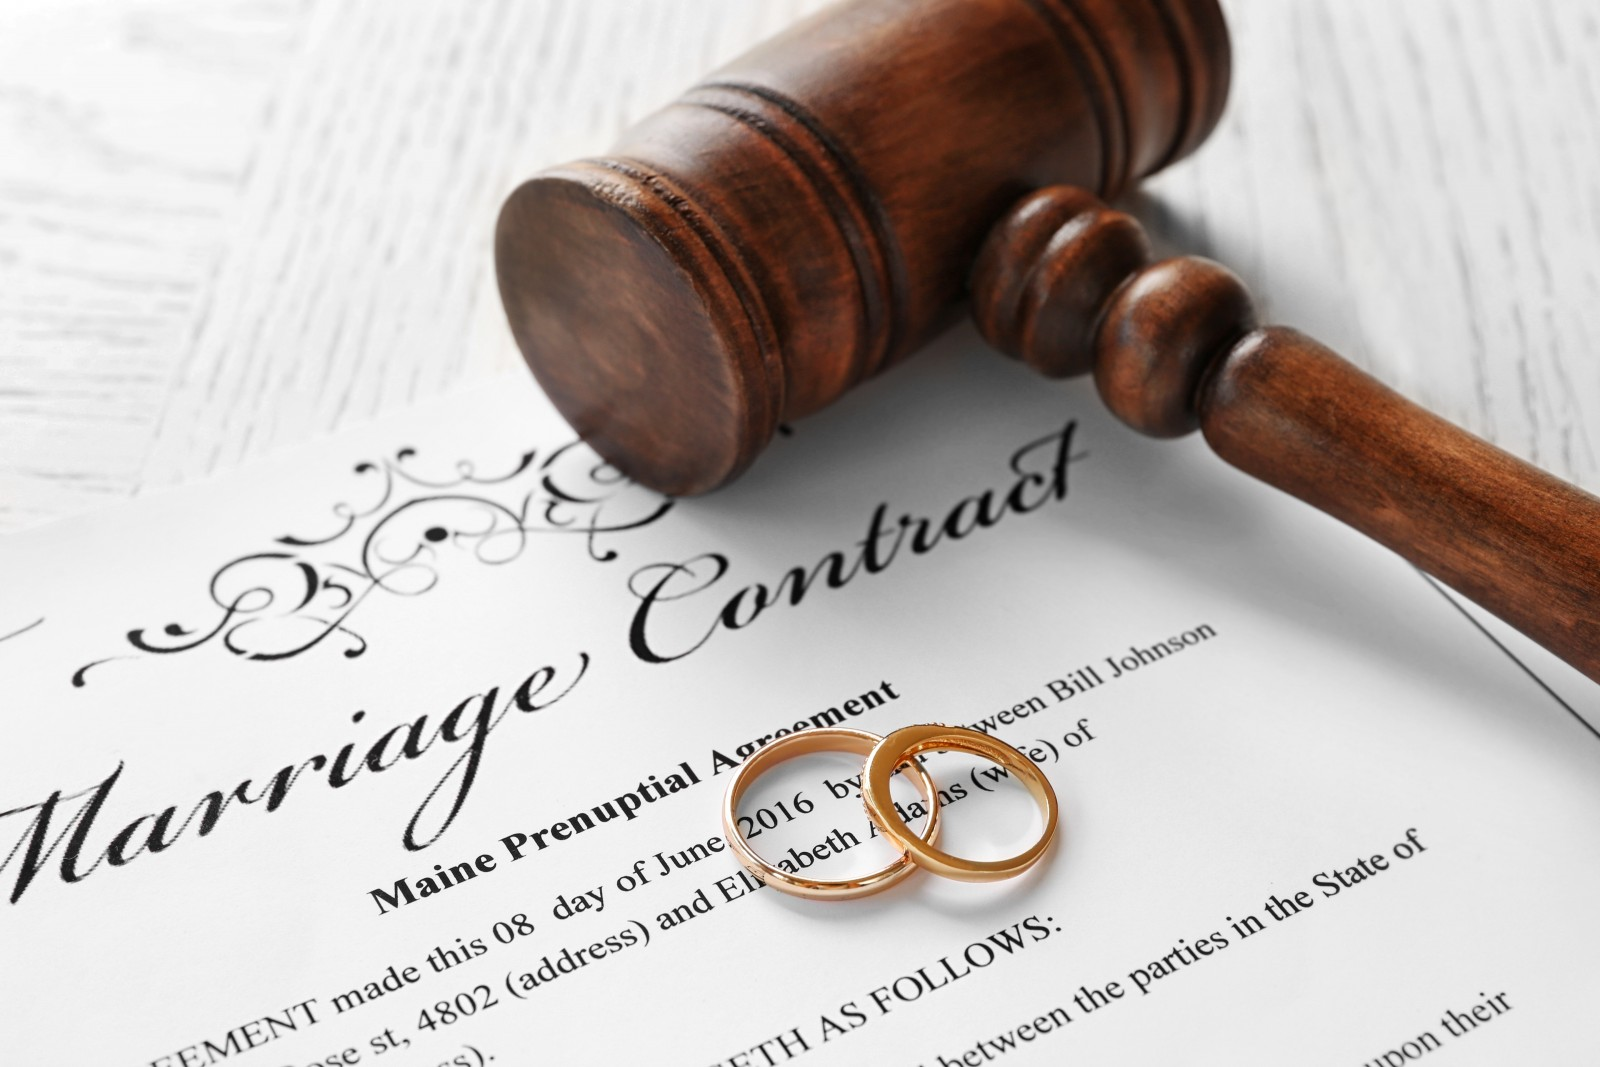 Image of a Marriage Contract document in court - Calgary, Alberta Legal Help